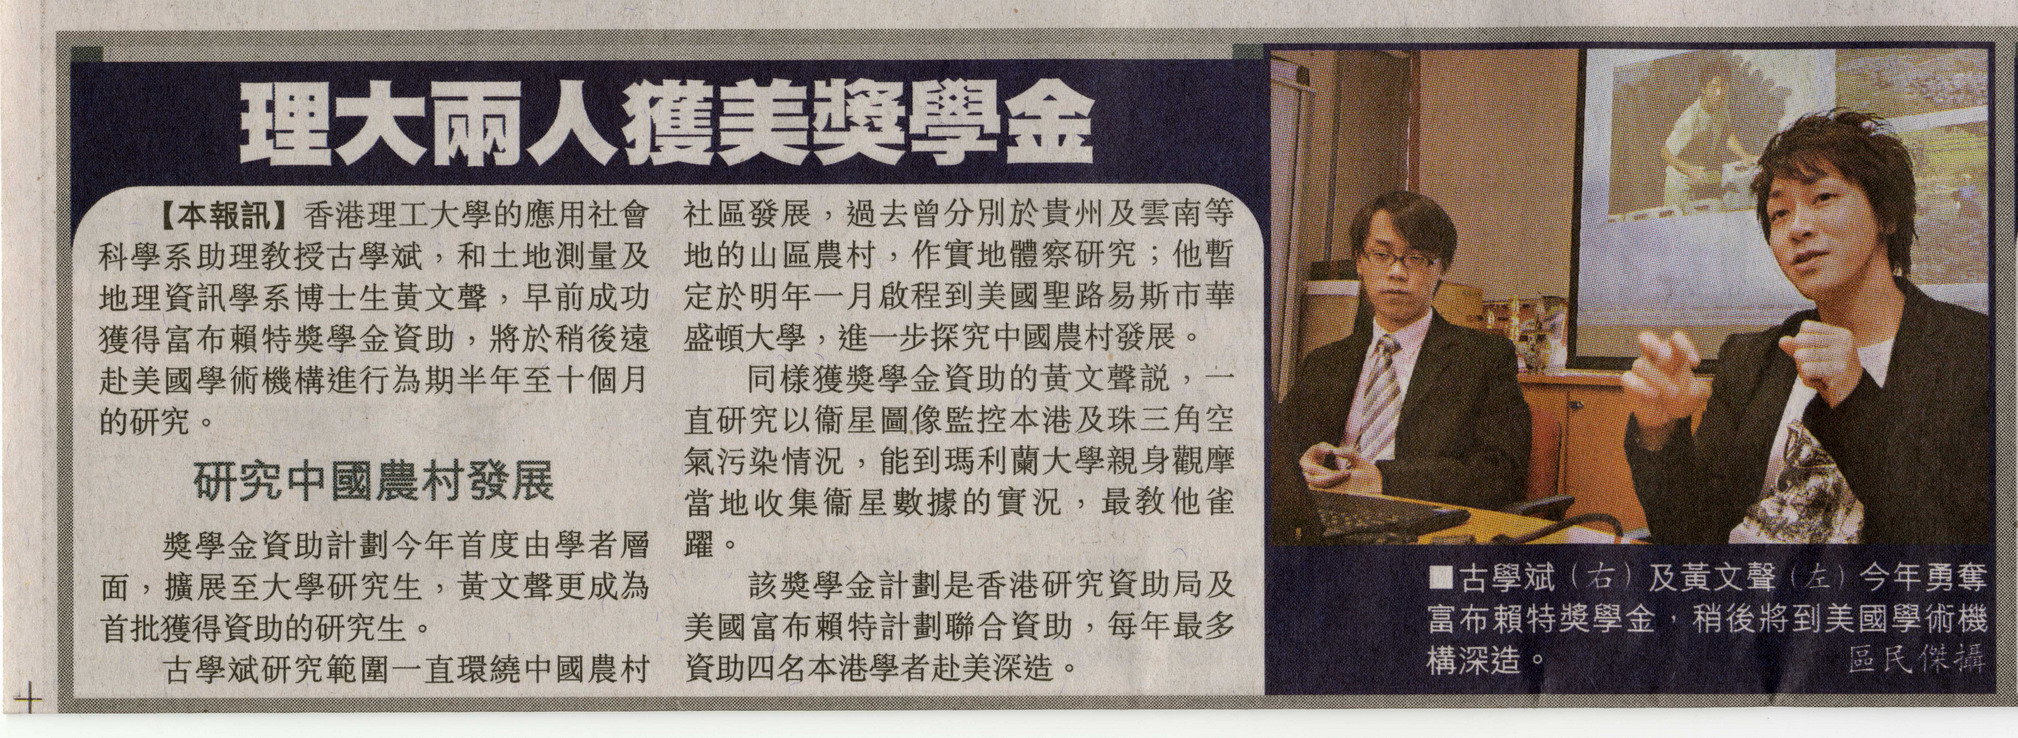 Daily Apple Newspaper http://www.lsgi.polyu.edu.hk/RSRG/news.html